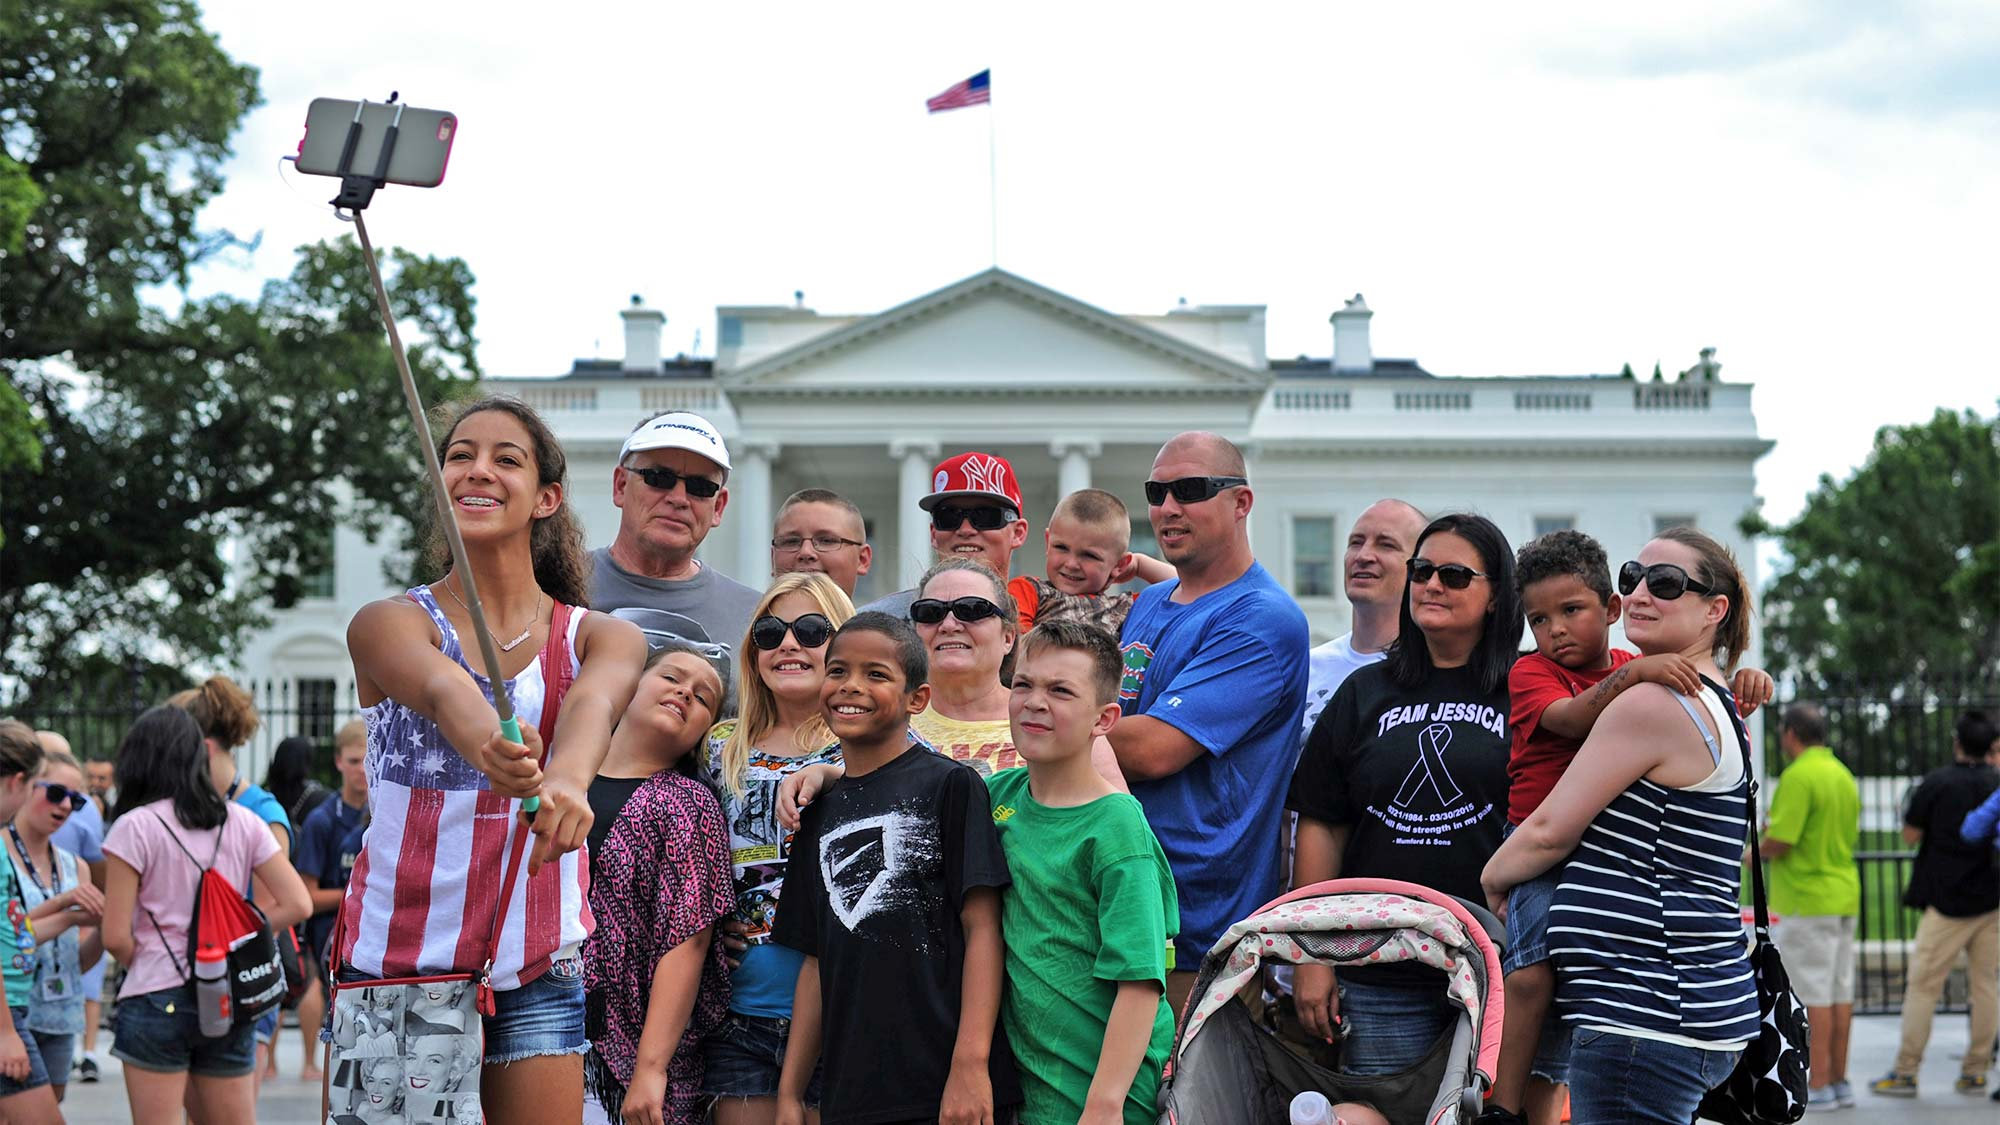 7 Unexpected Things You'll See on the White House Tour